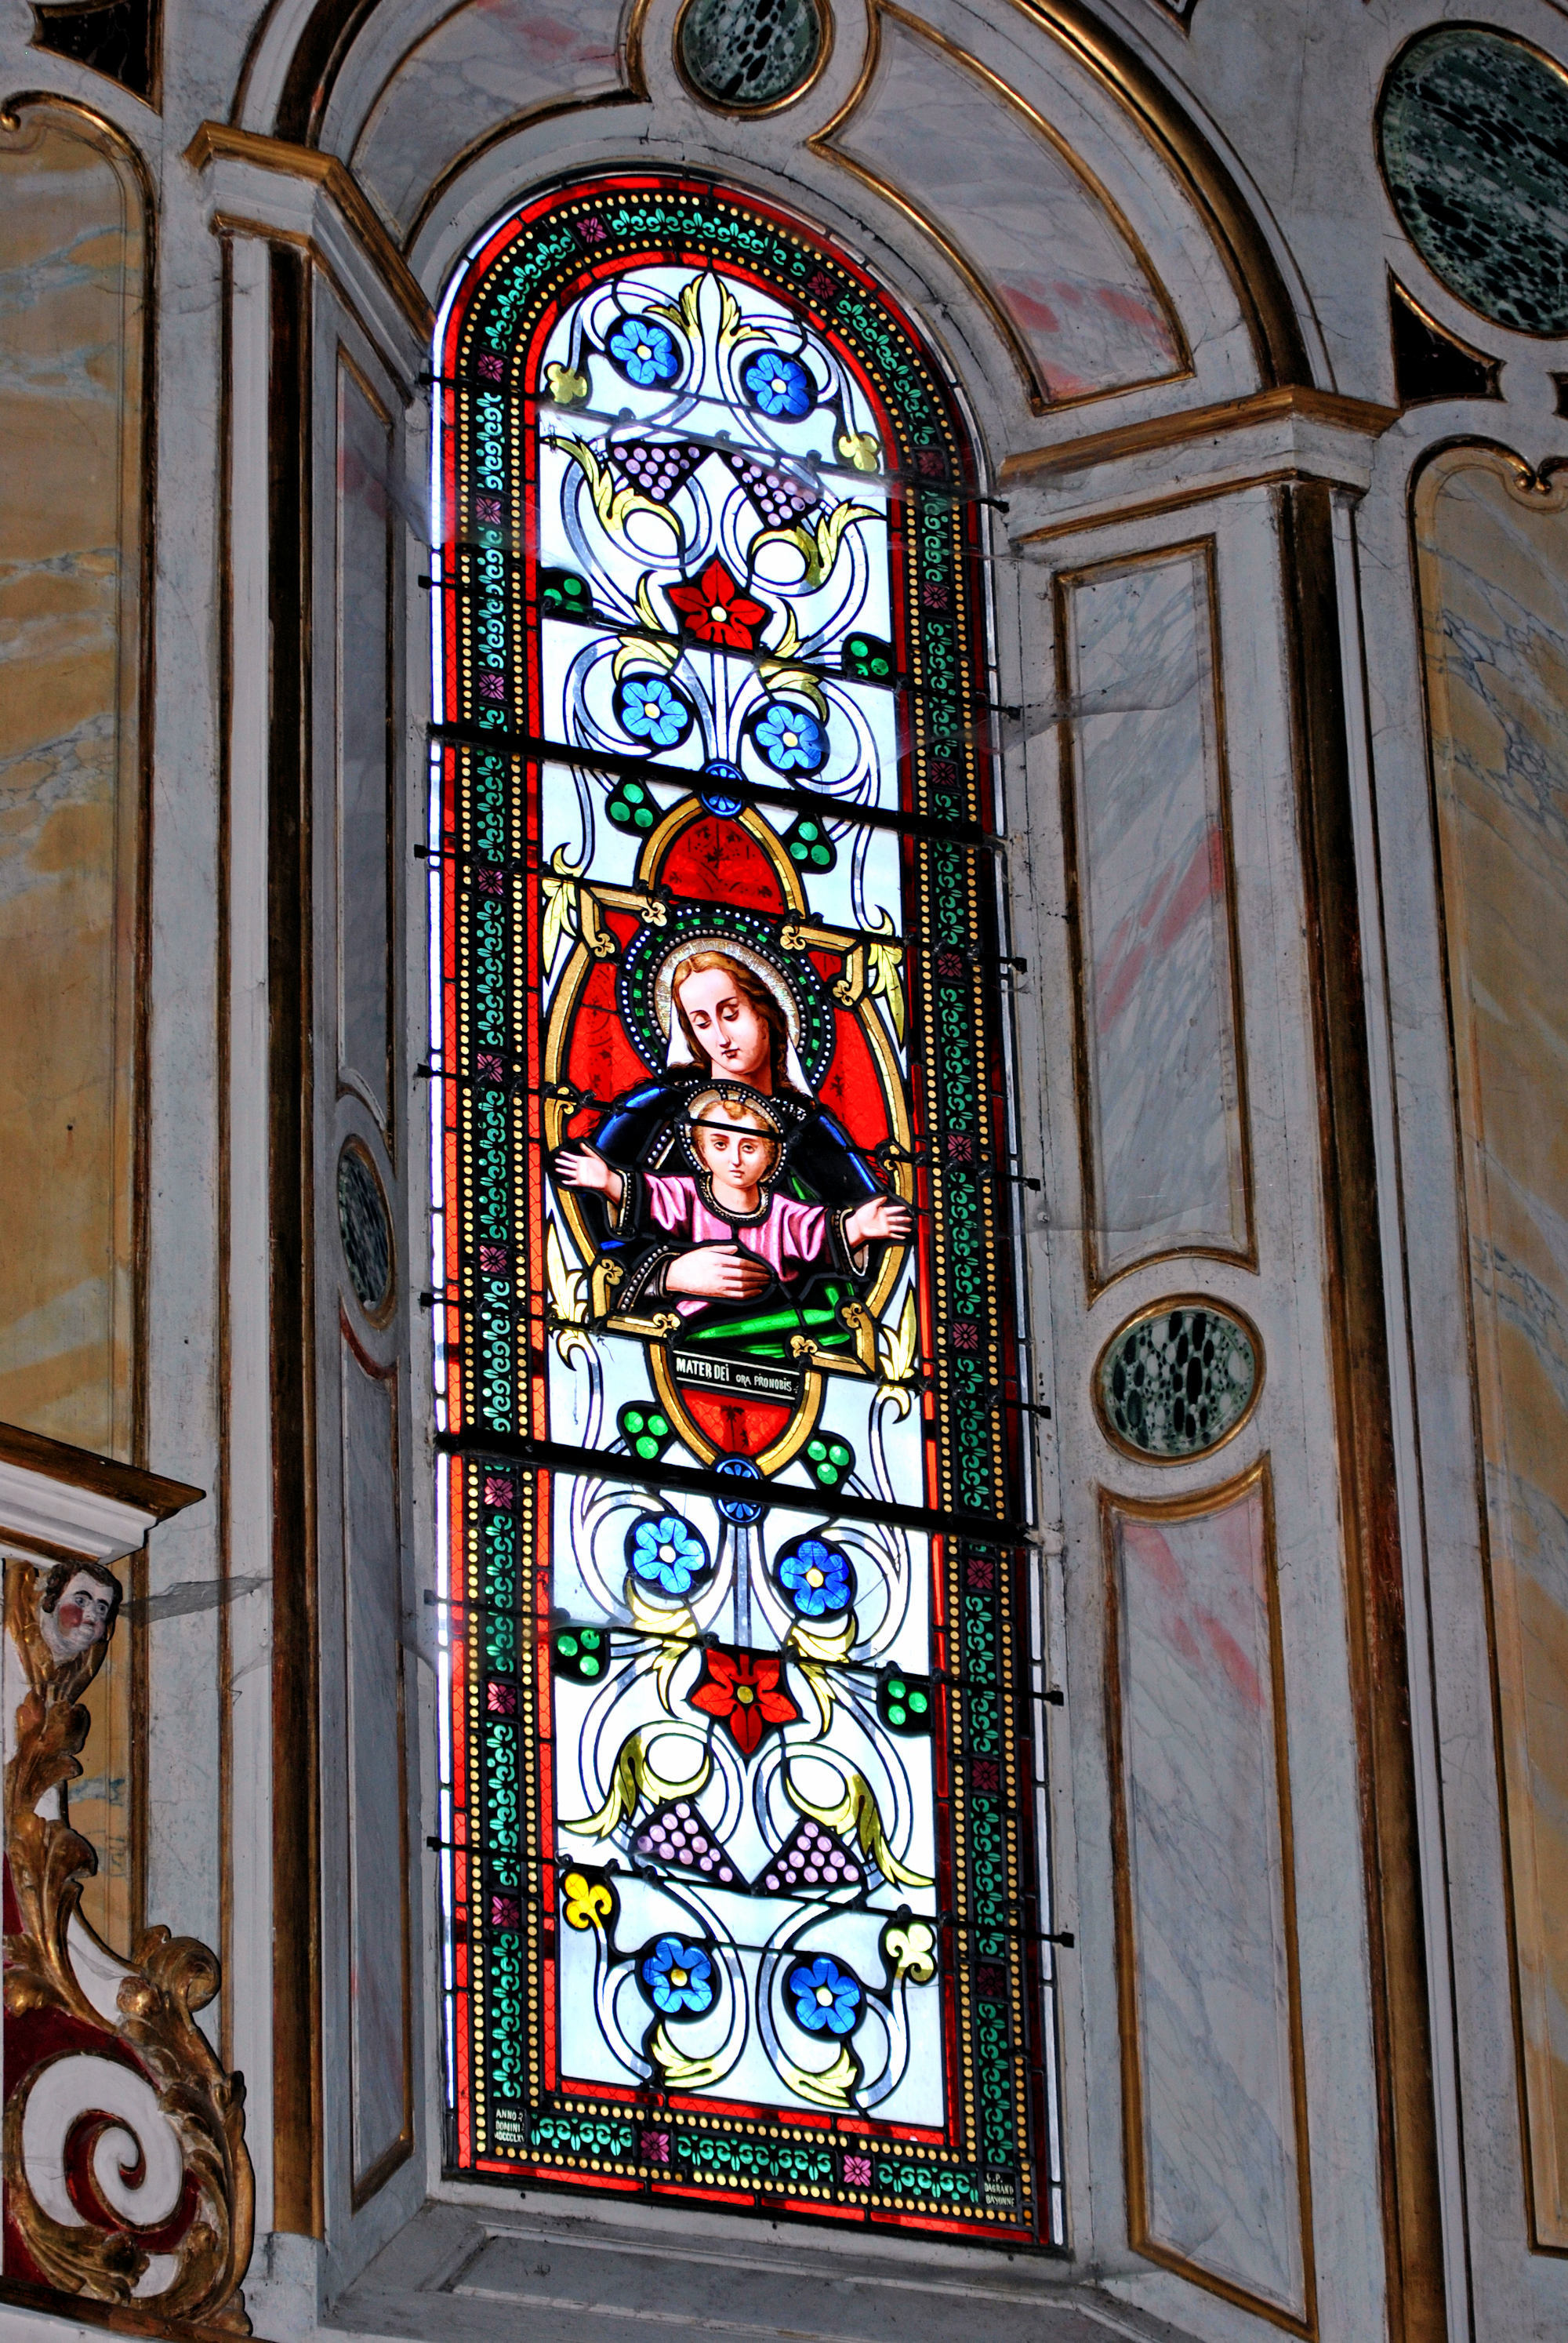 Vitrail - Stained glass window 13